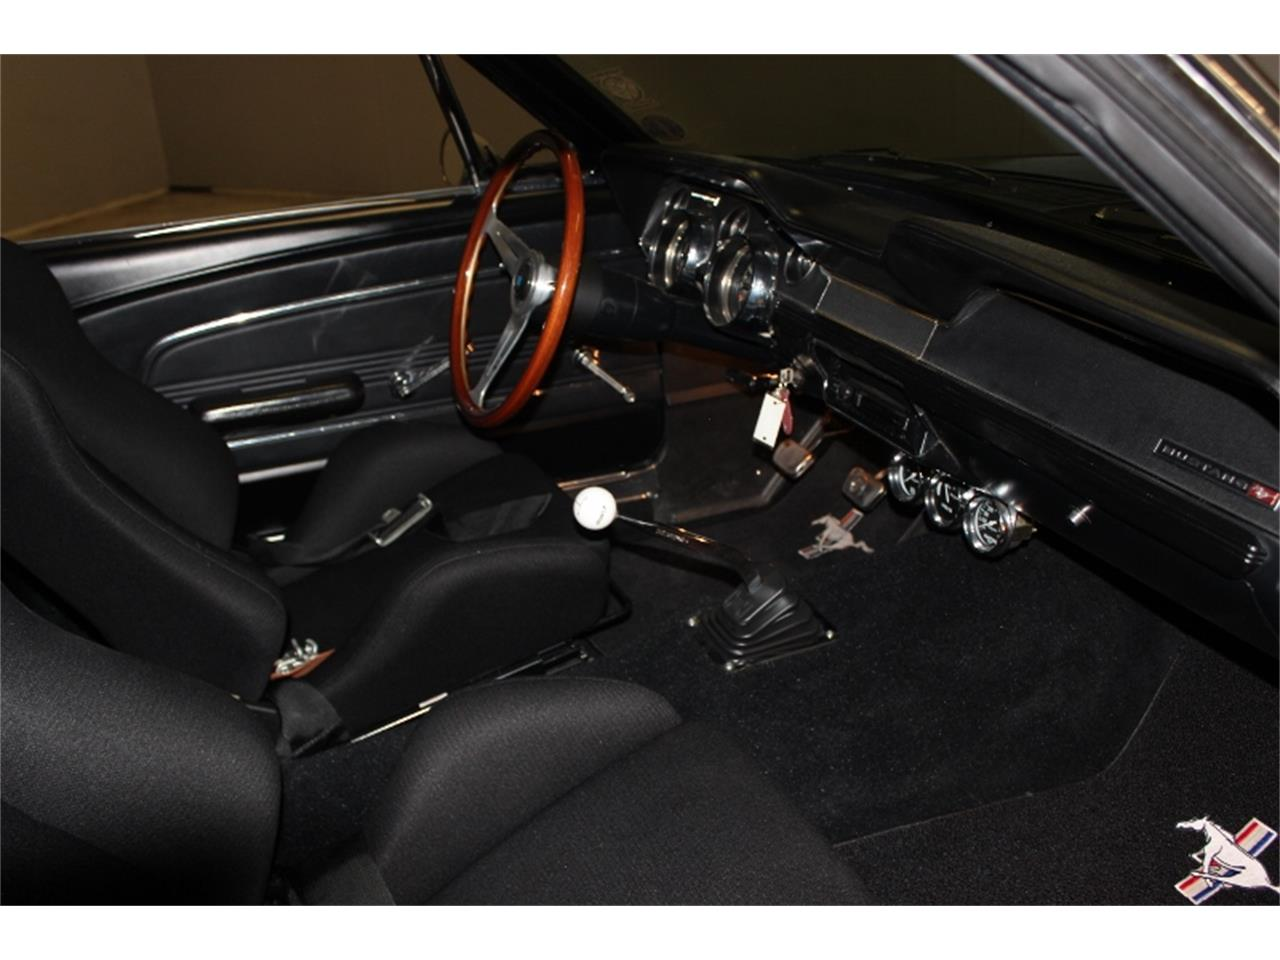 Large Picture of Classic 1967 Ford Mustang located in Lillington North Carolina - $77,900.00 - M4K9